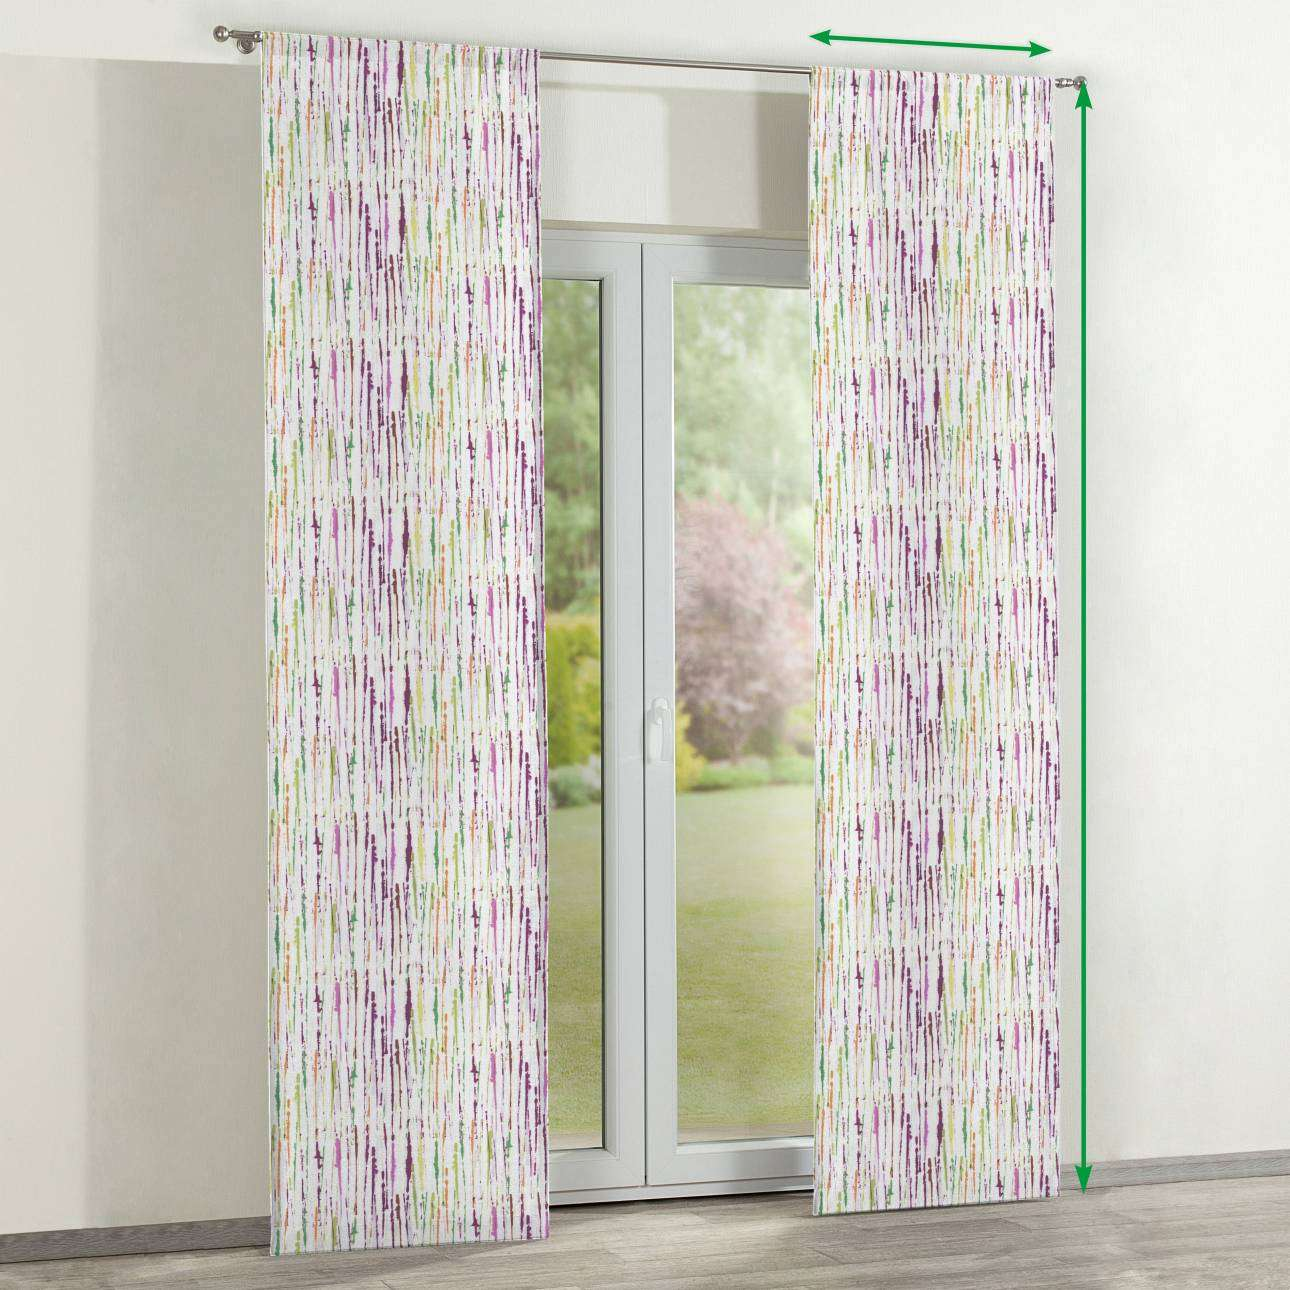 Slot panel curtains – Set of 2 in collection Aquarelle, fabric: 140-72